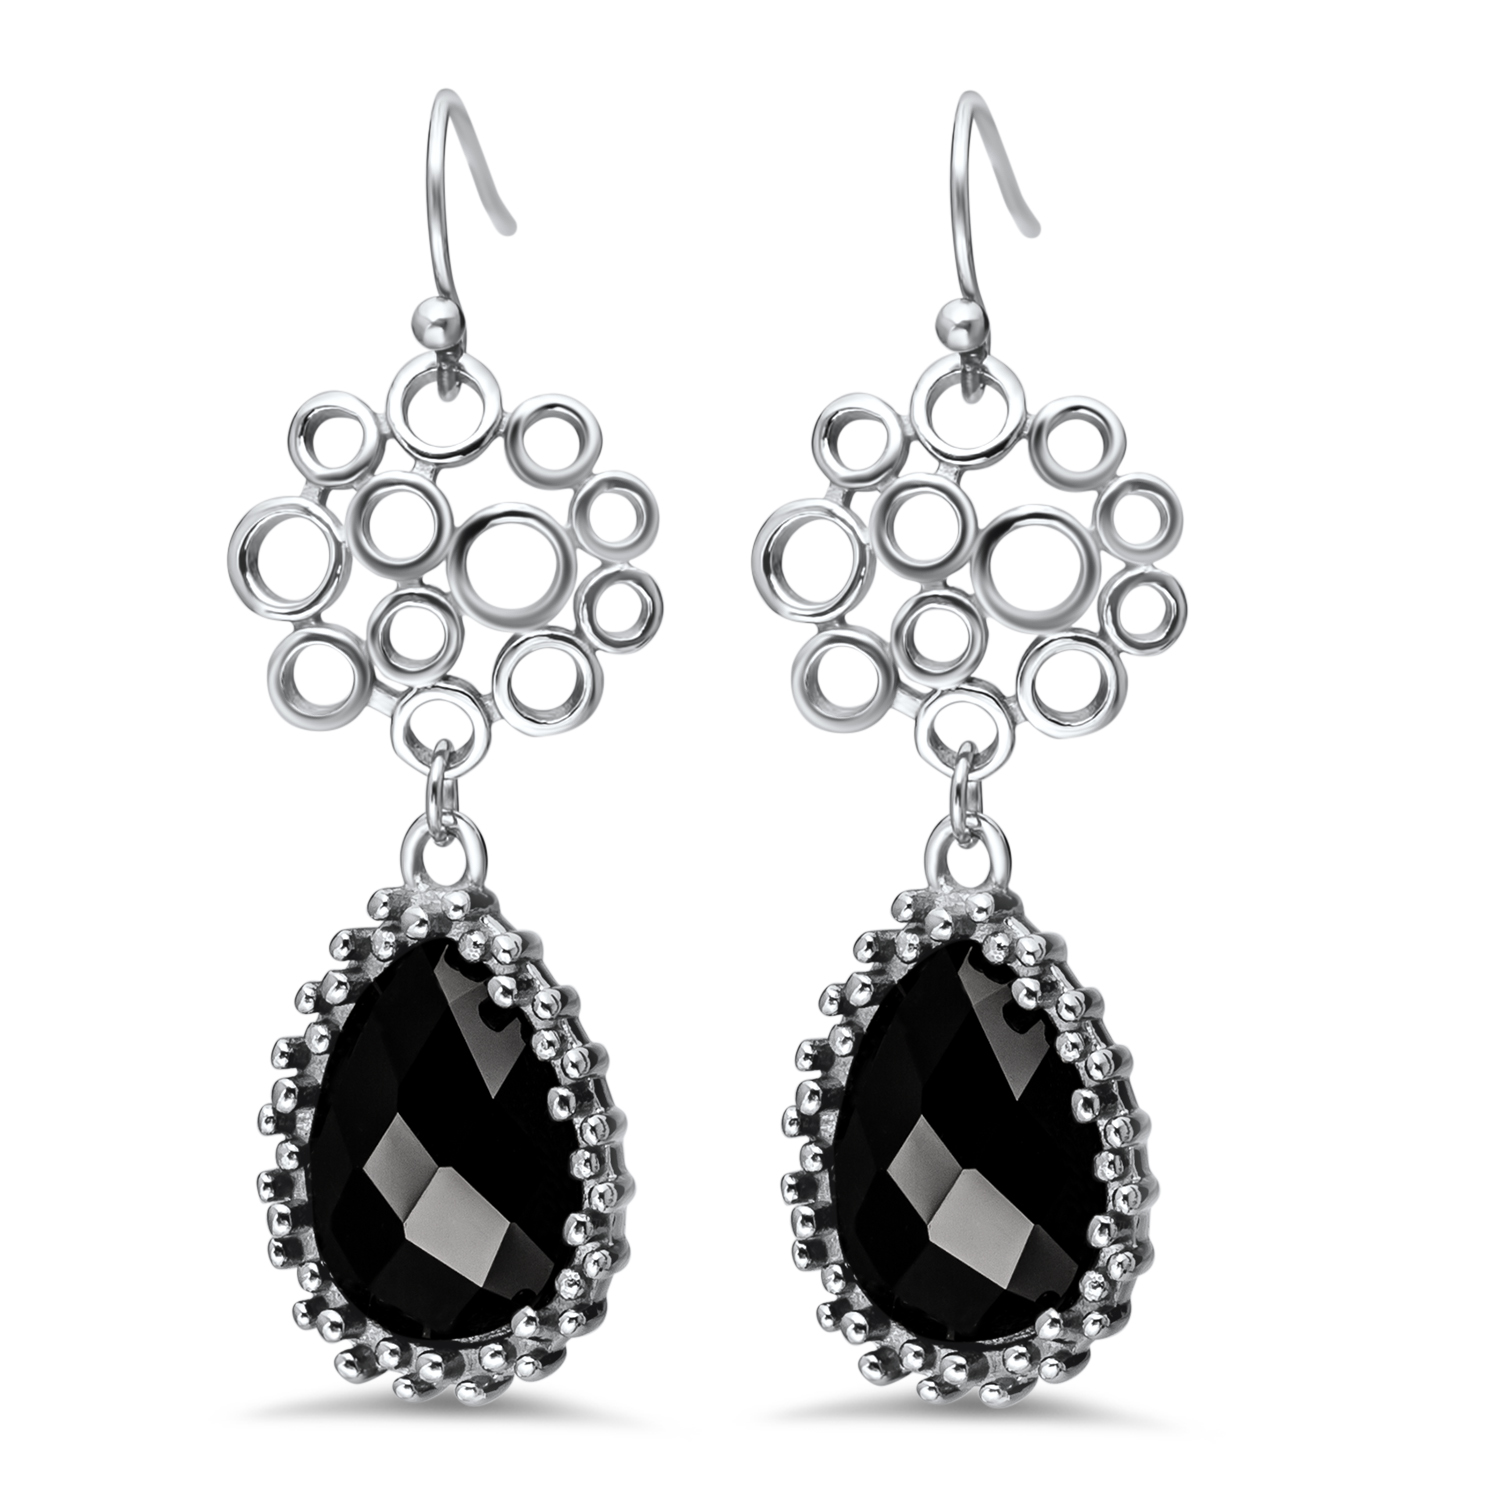 Stainless Steel Polished Black Onyx Teardrop Earrings